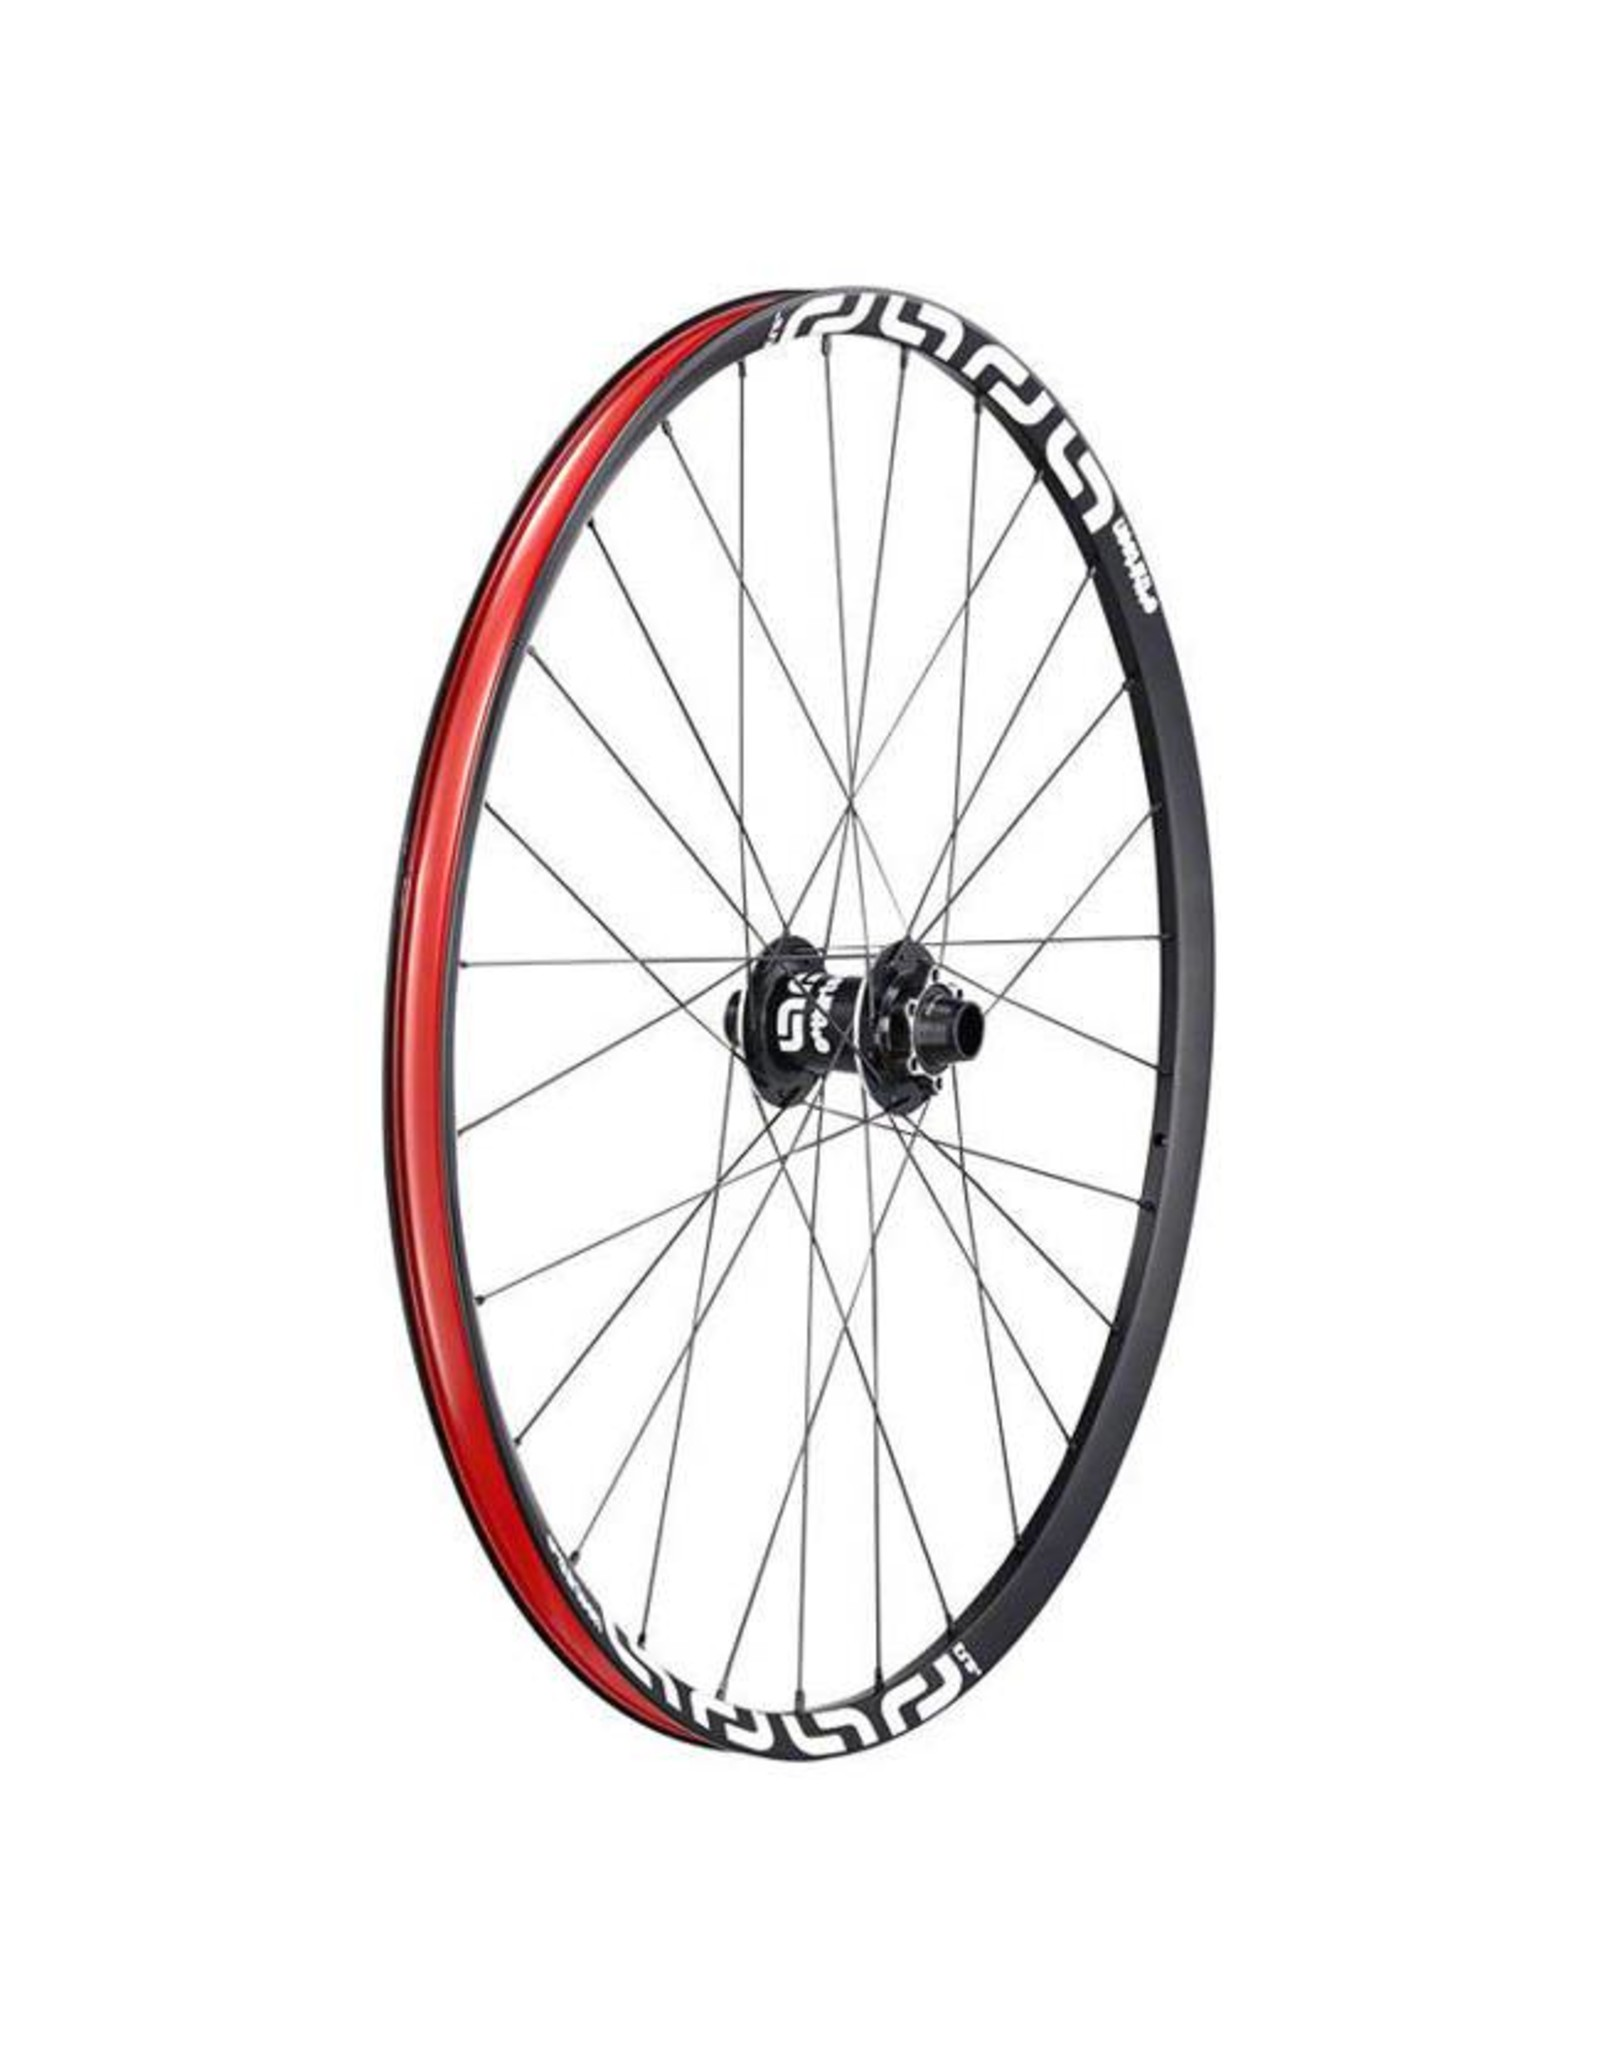 "e*thirteen by The Hive e*thirteen TRS+ Front Wheel 27.5"" 110x15mm Tubeless, Black"